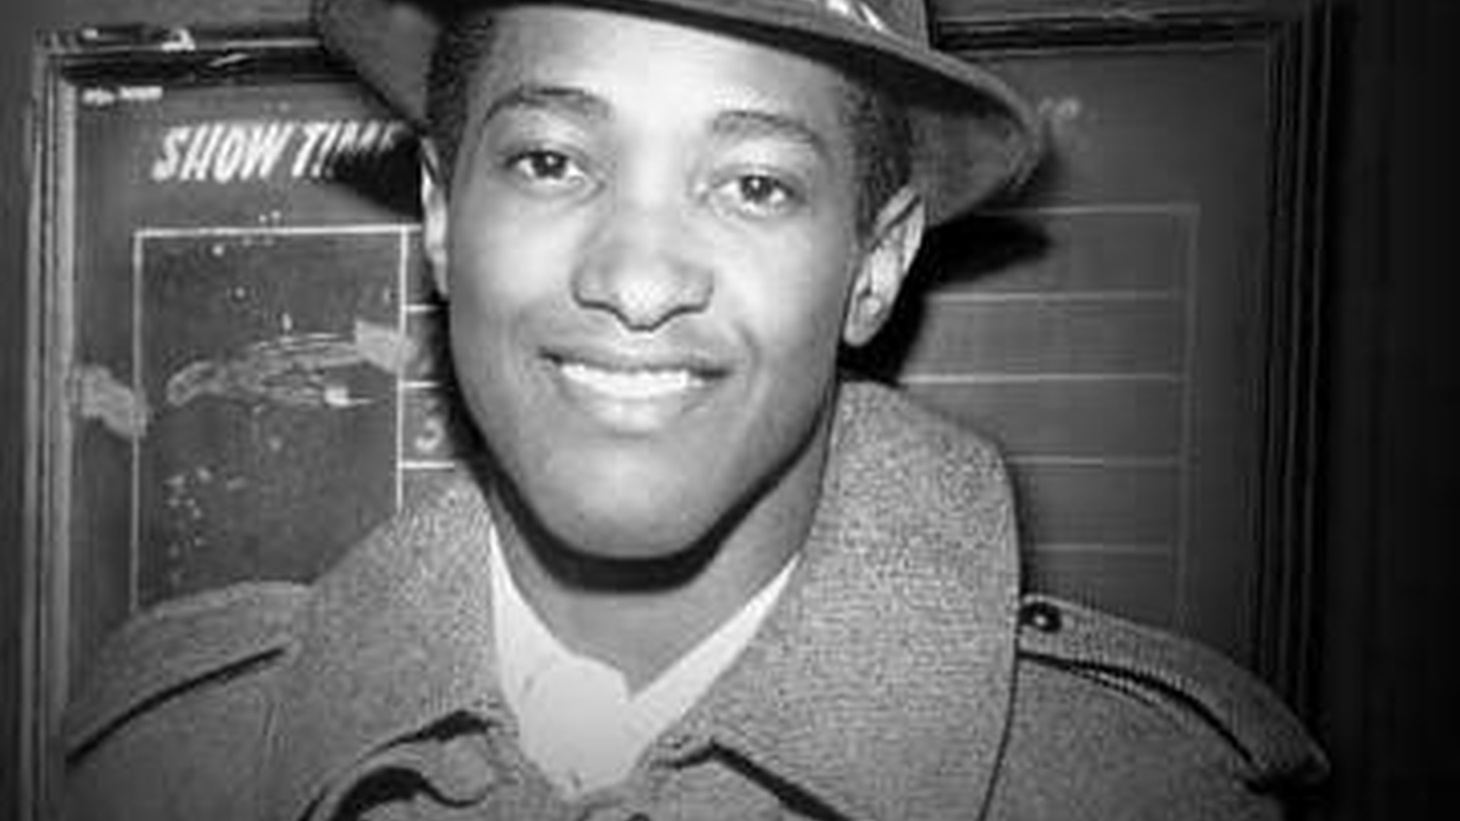 One-hour documentary details the life and music of Sam Cooke. (Airs 11am-noon; preempts Morning Becomes Eclectic)